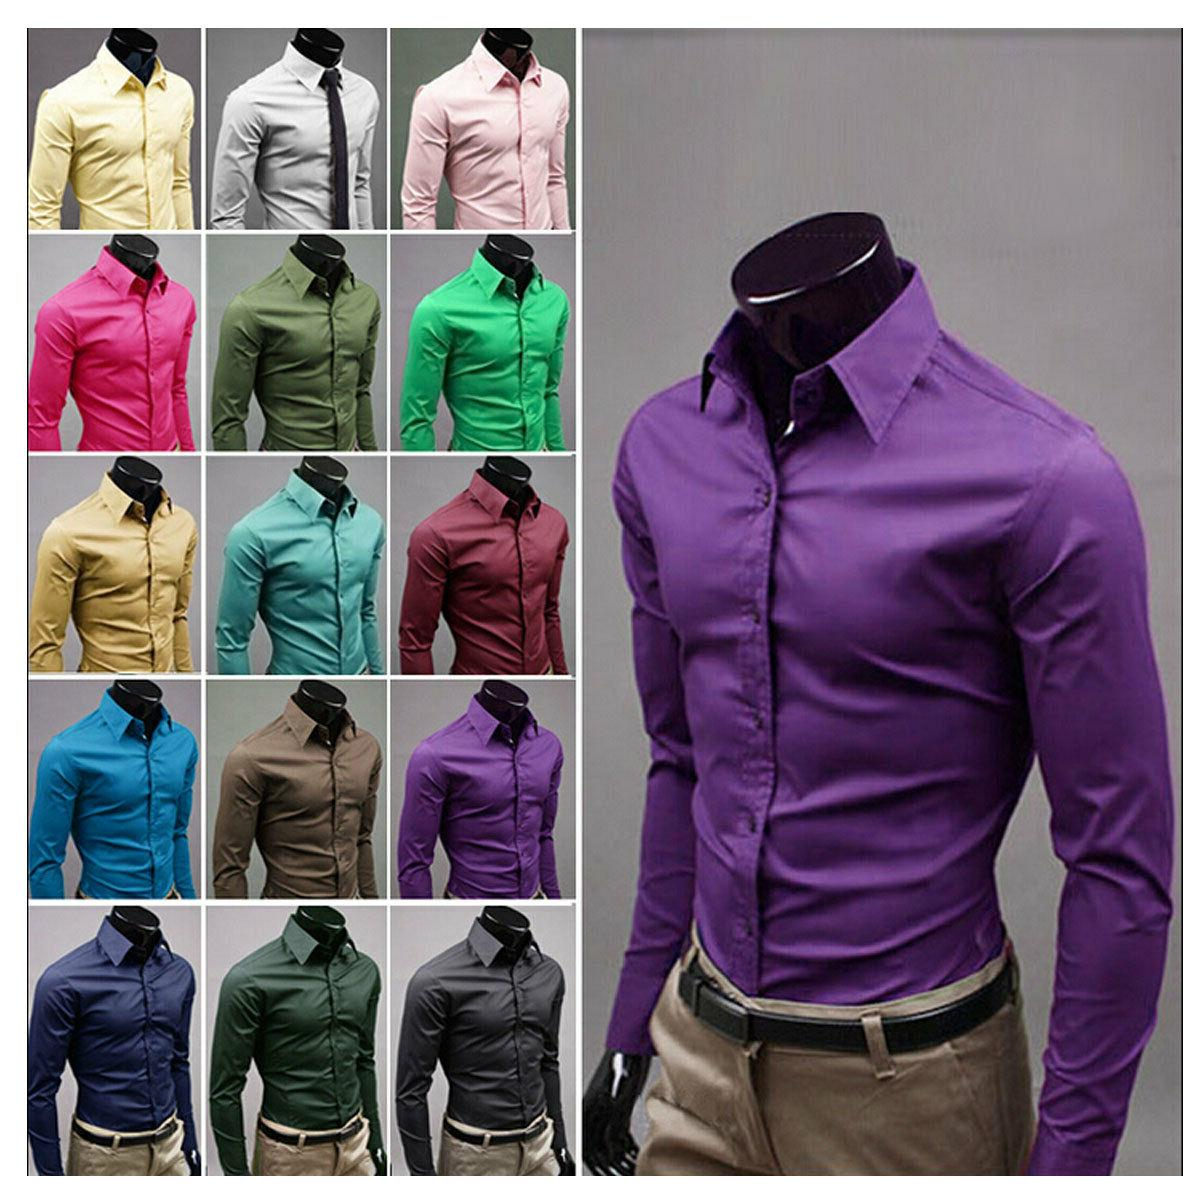 Fashion Mens Luxury Stylish Casual Dress Slim Fit T-Shirts C